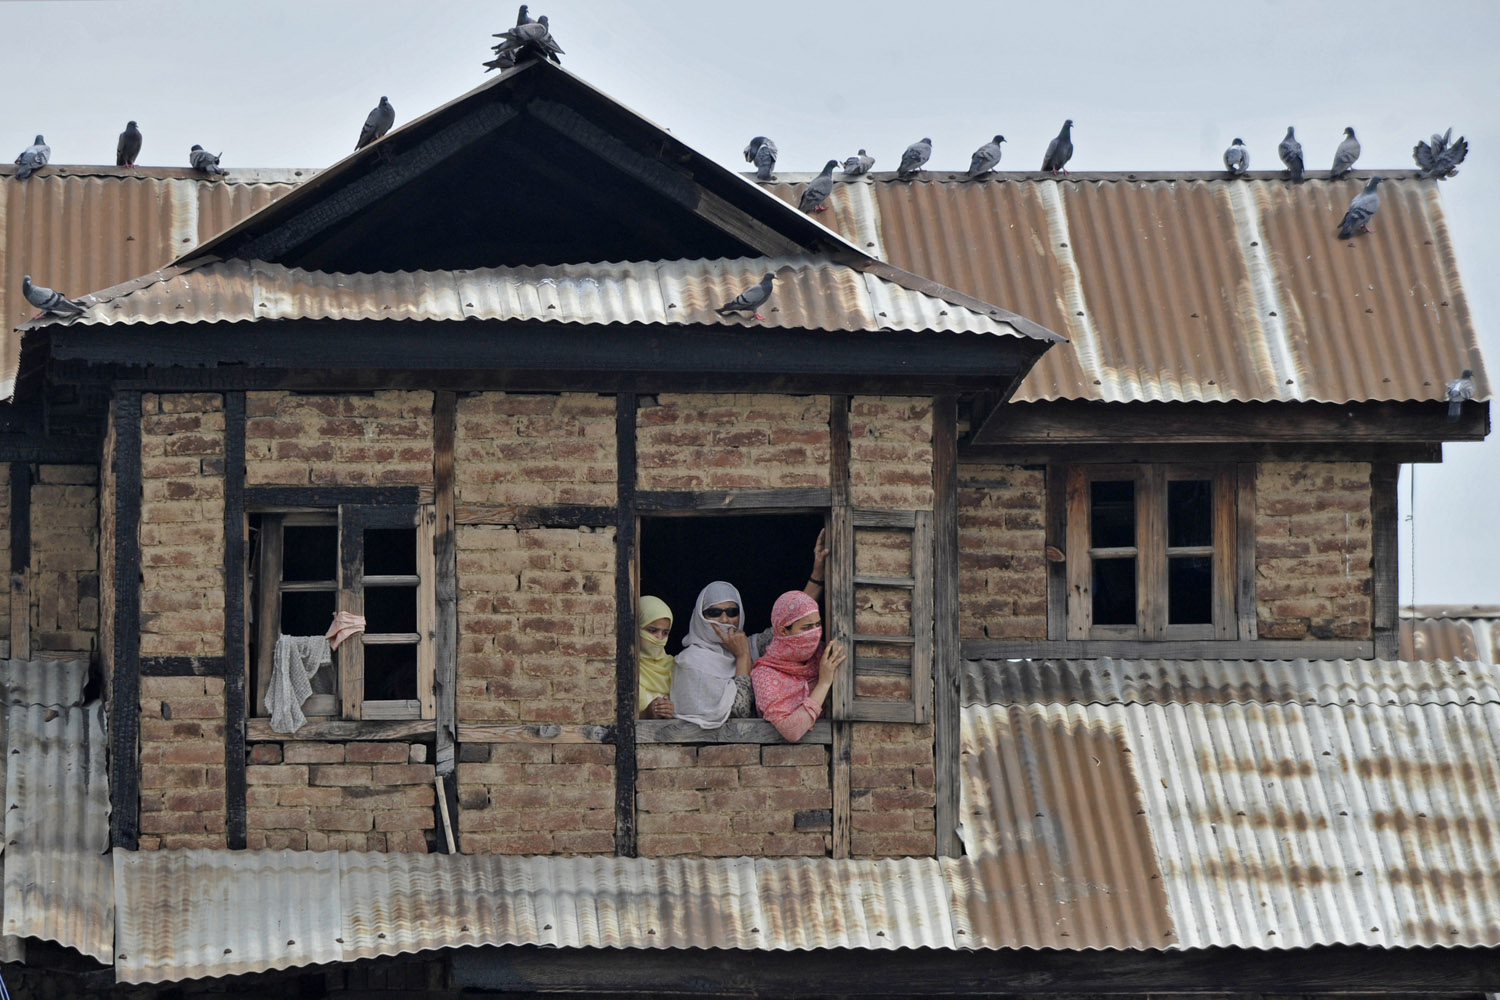 Aug. 10, 2012. Kashmiri Muslims look on from a window as an unseen custodian displays a holy relic in Srinagar, India.